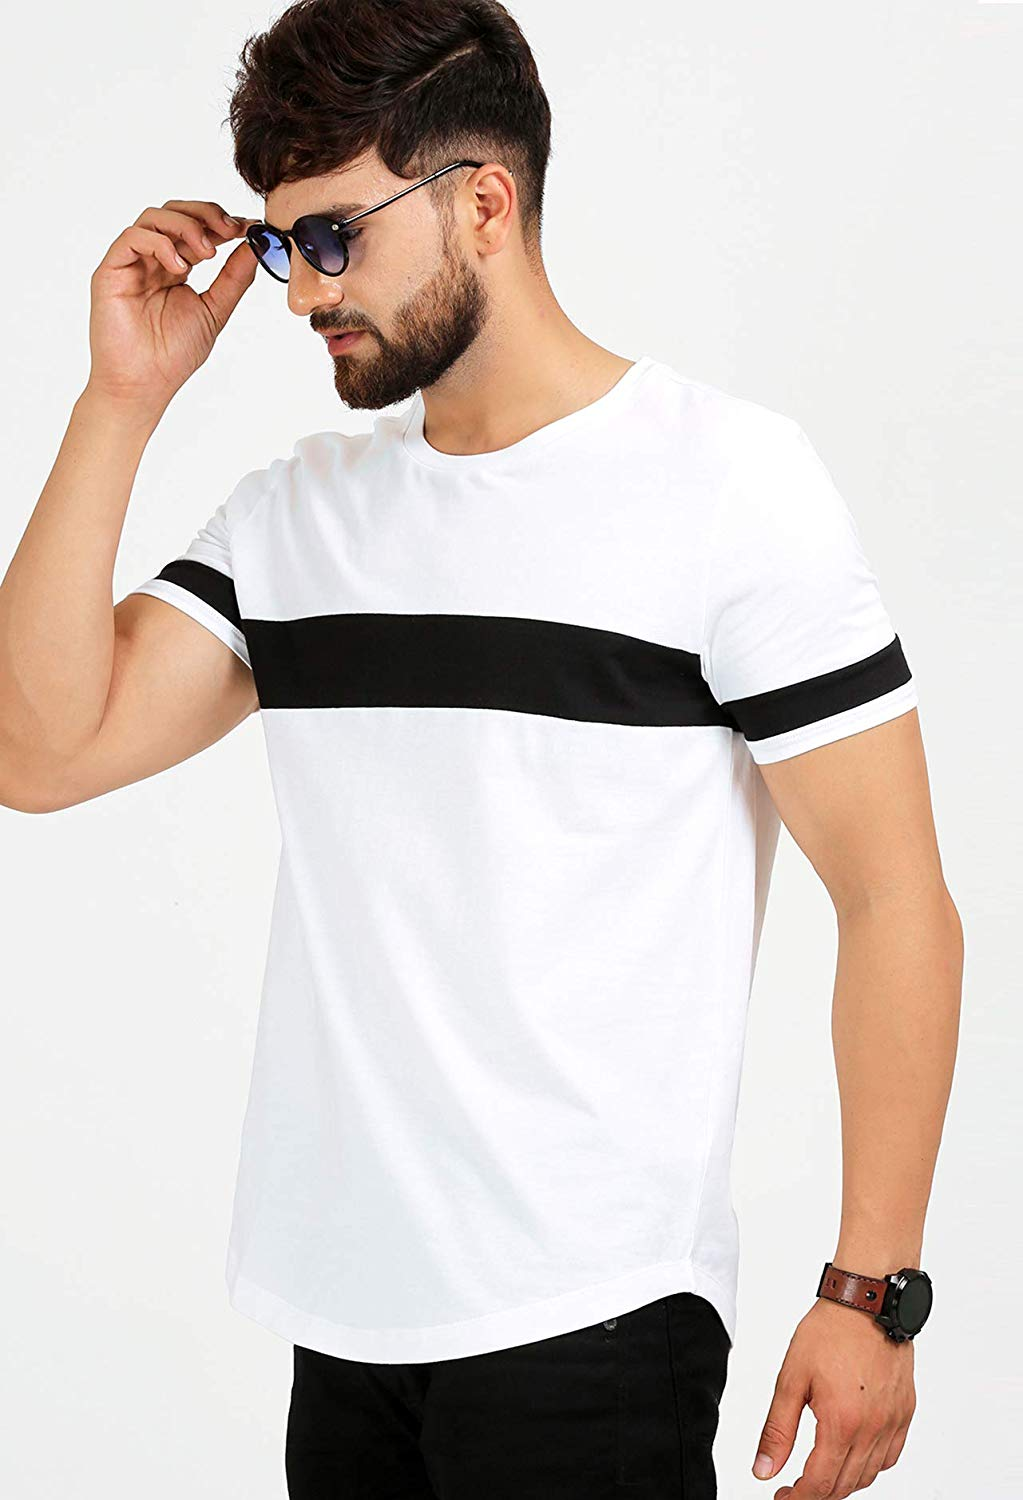 2f33d80e8 ₹1,499.00 ₹499.00. ₹10.00 Cashback. 100% Cotton premium fabric, Plain white  and black; Half Sleeves, Round neck; Regular fit, Casual T-Shirt ...